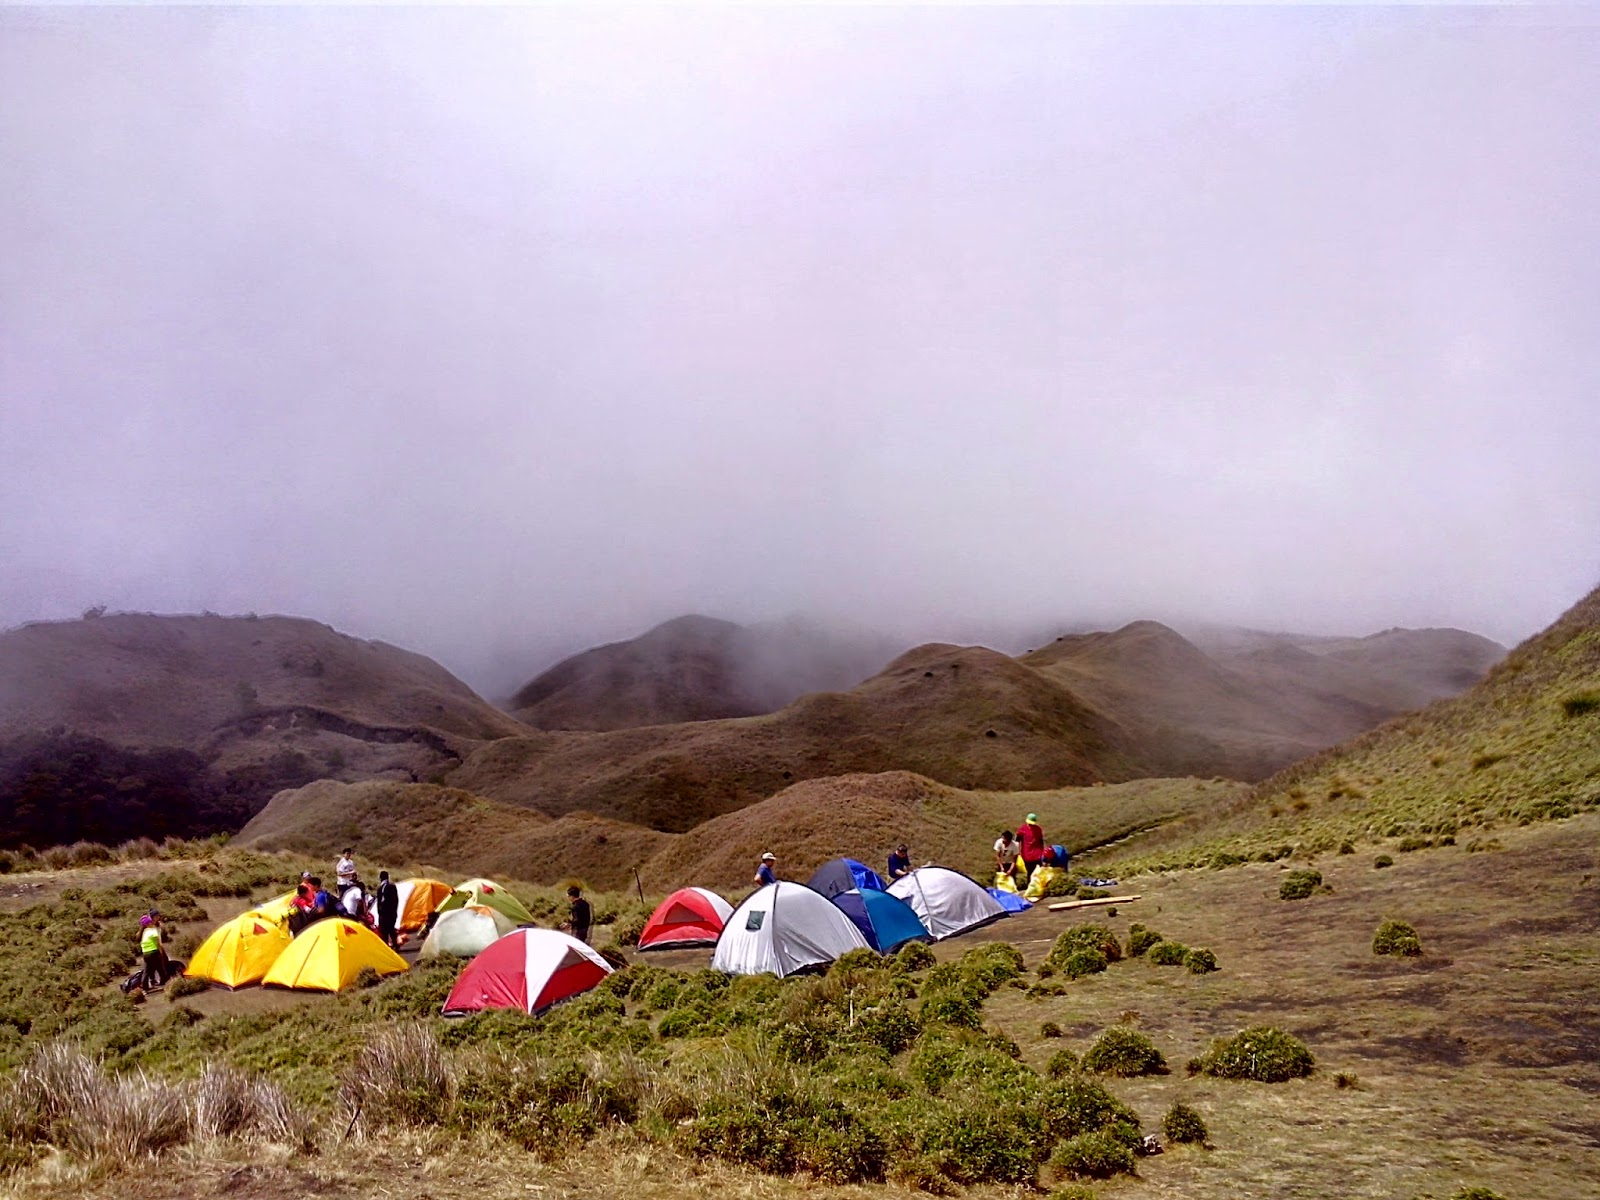 Mt. Pulag Camp 3 - Grasslands